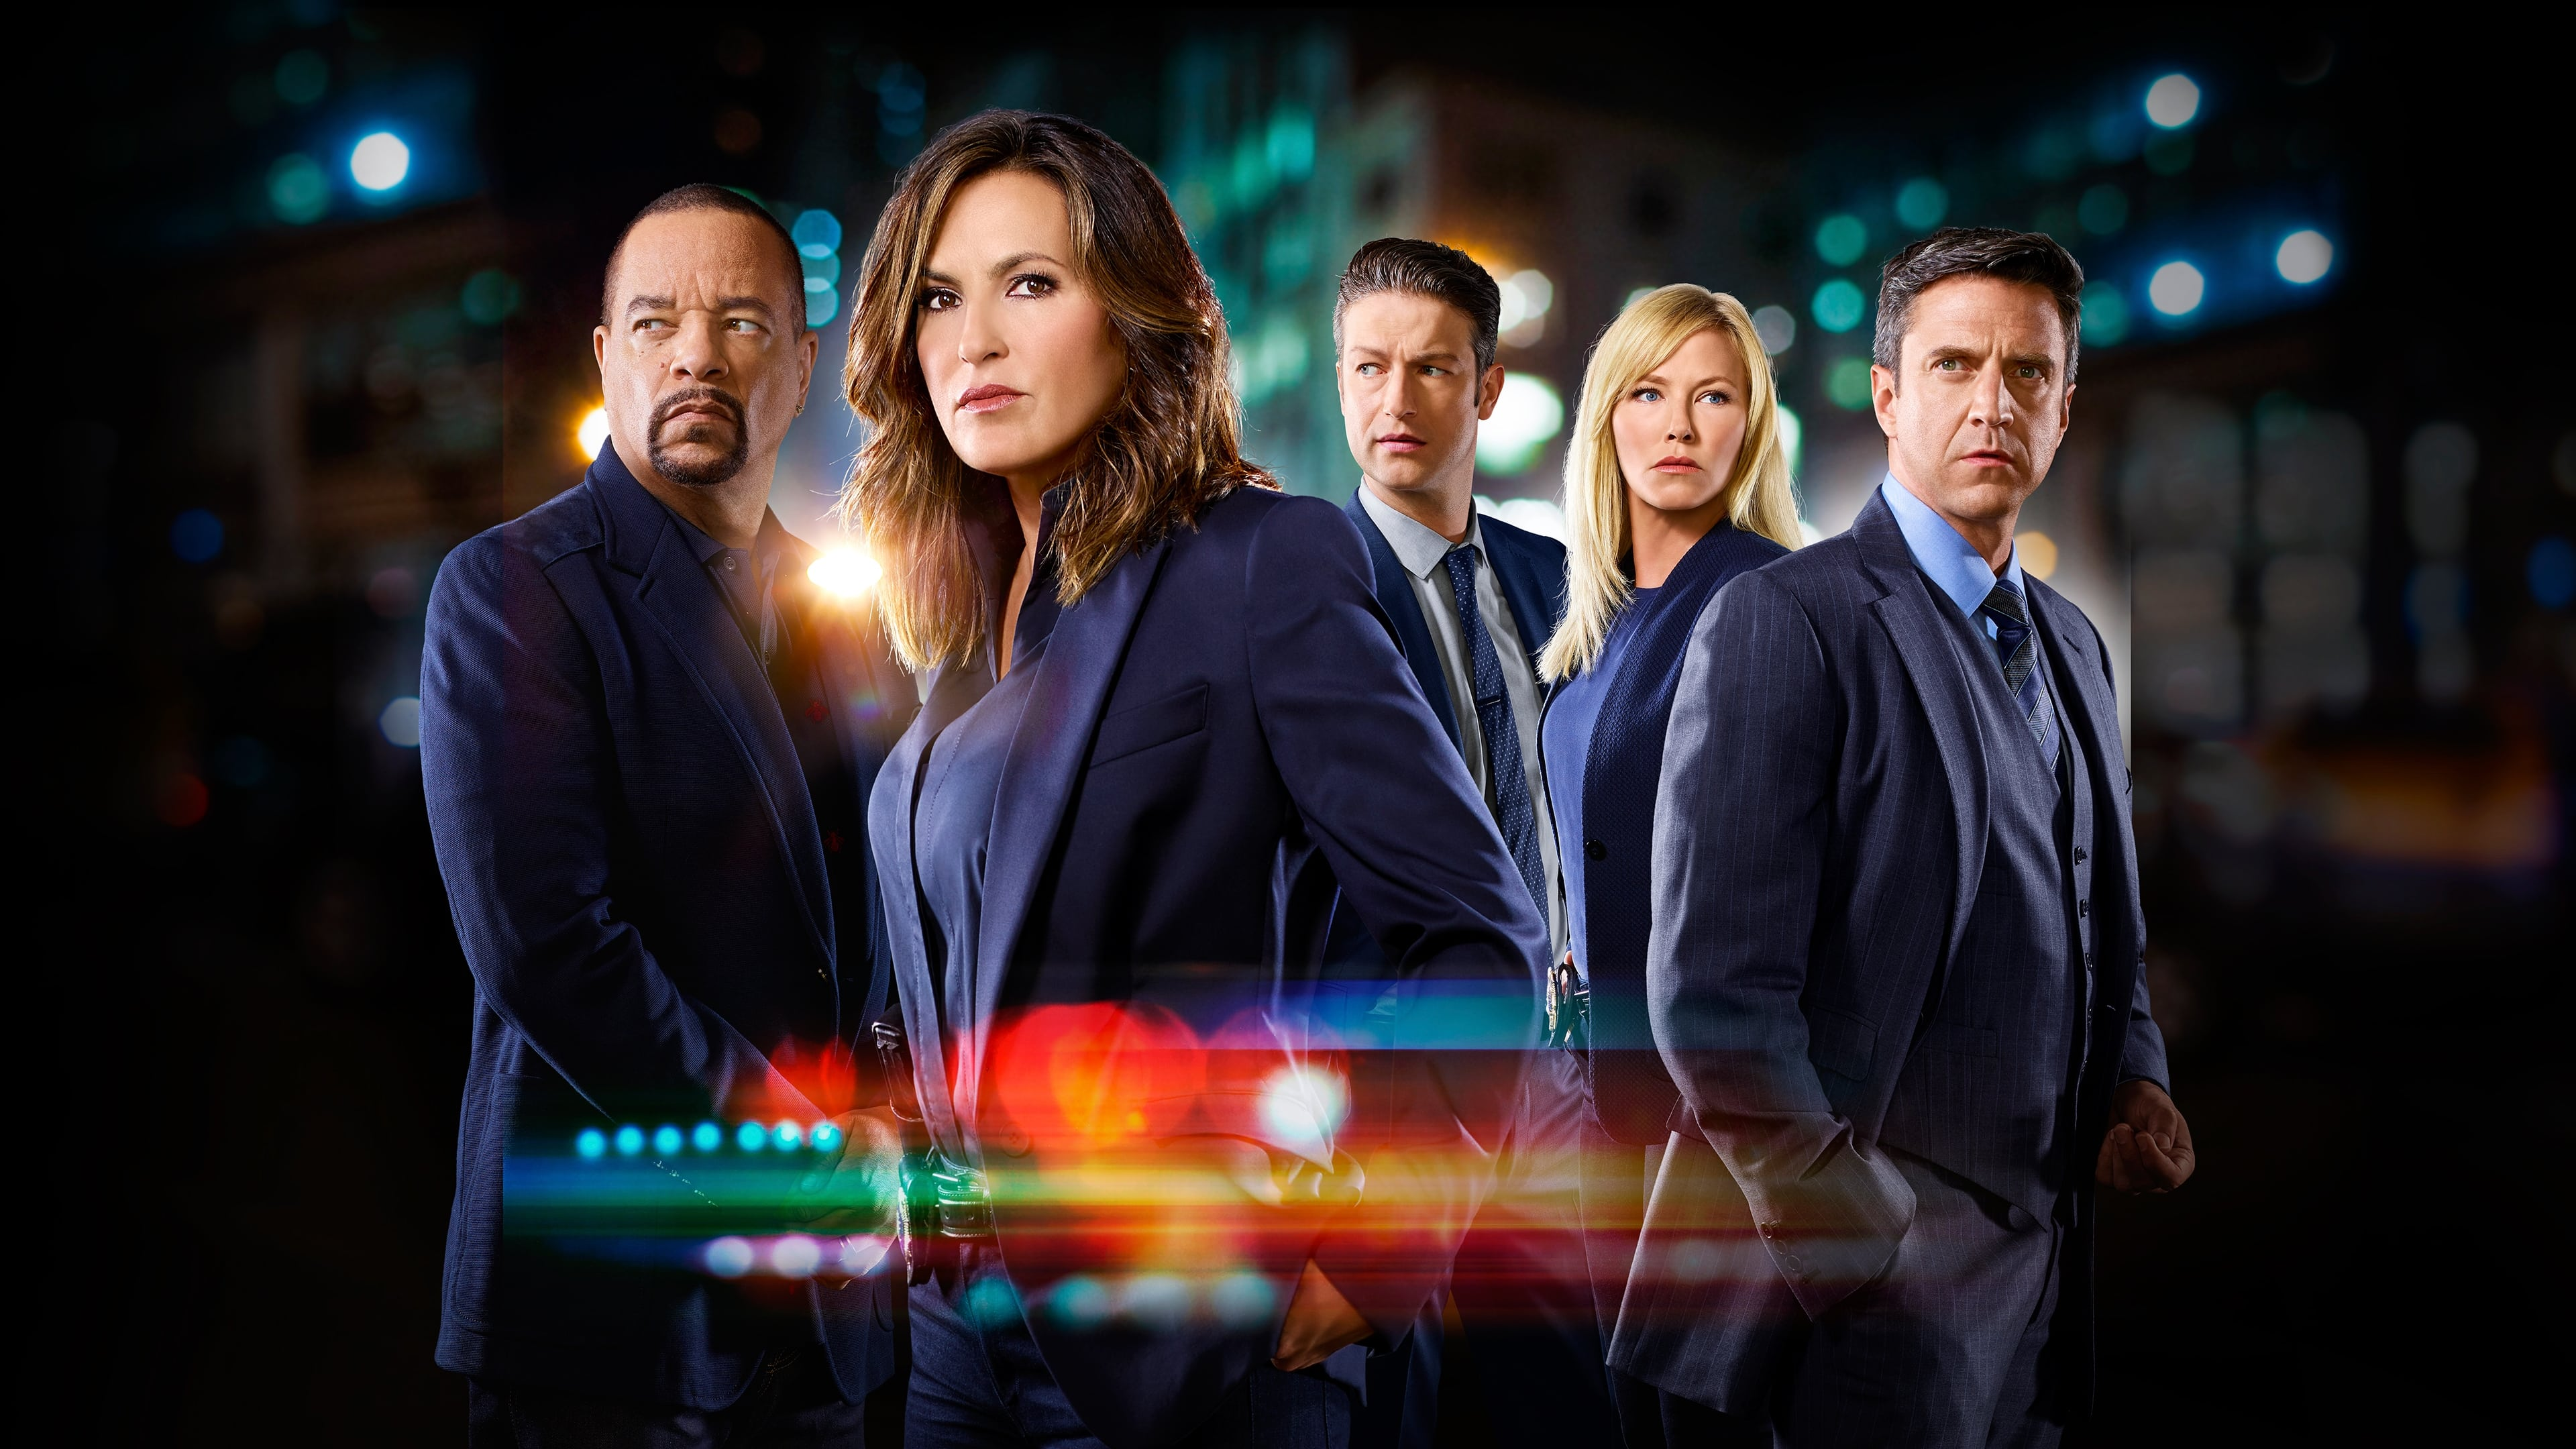 Law & Order: Special Victims Unit - Season 14